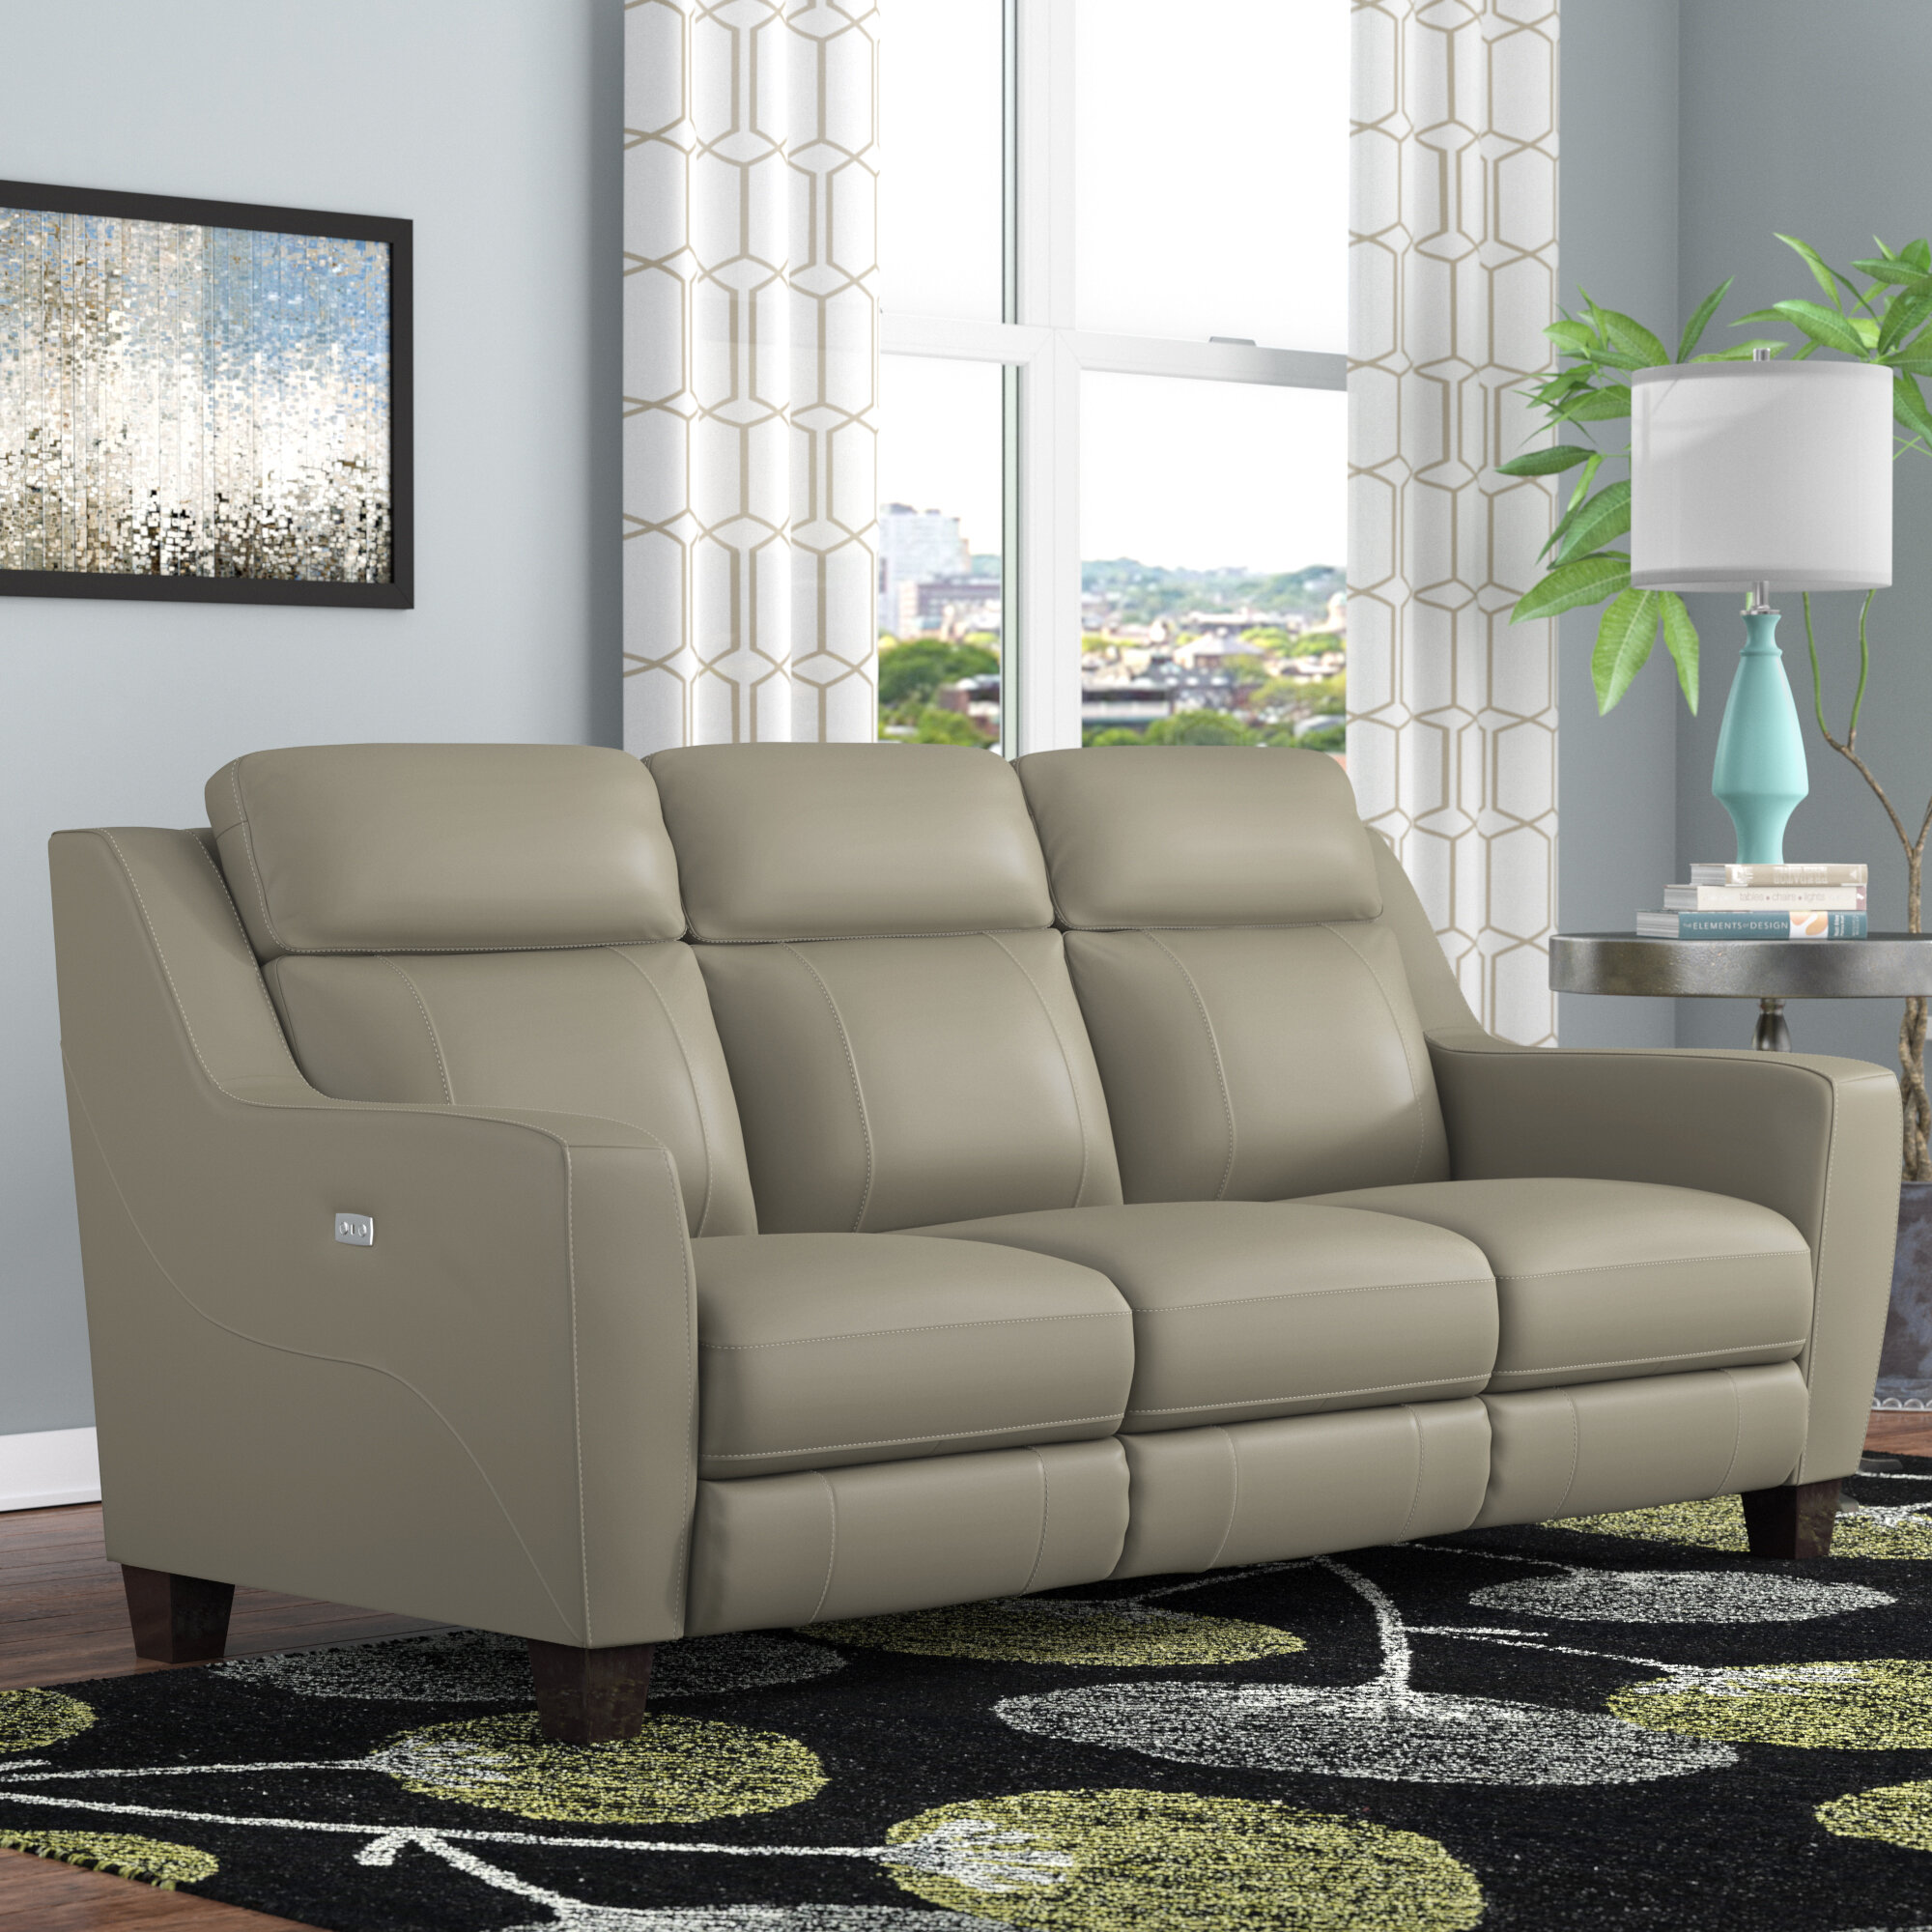 bl belfast lb e sofa premium grey collection seater slate bonded reclining leather dark power recliner